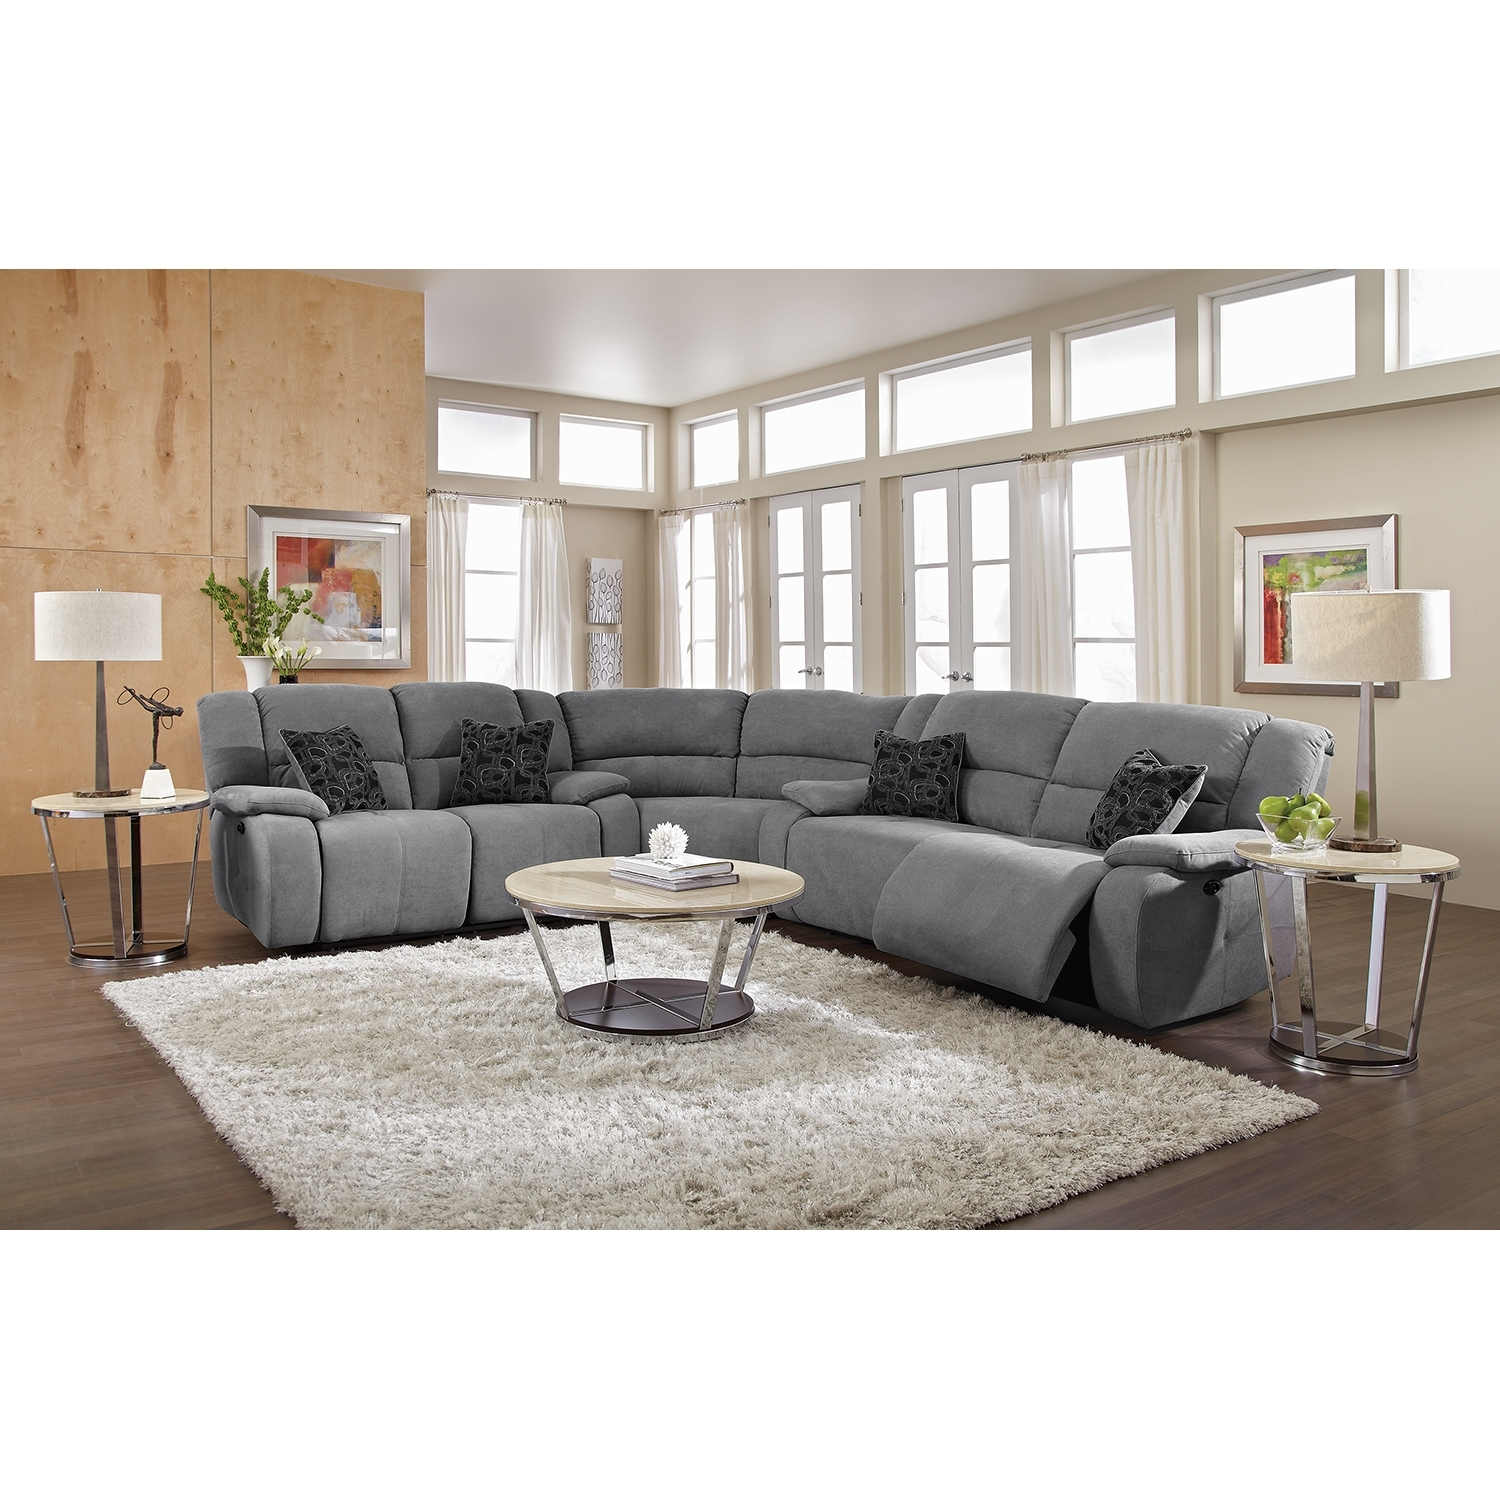 Love This Couch Gray Is Awesome Future Living Room Pinterest With Regard To Curved Sectional Sofa With Recliner (#11 of 12)